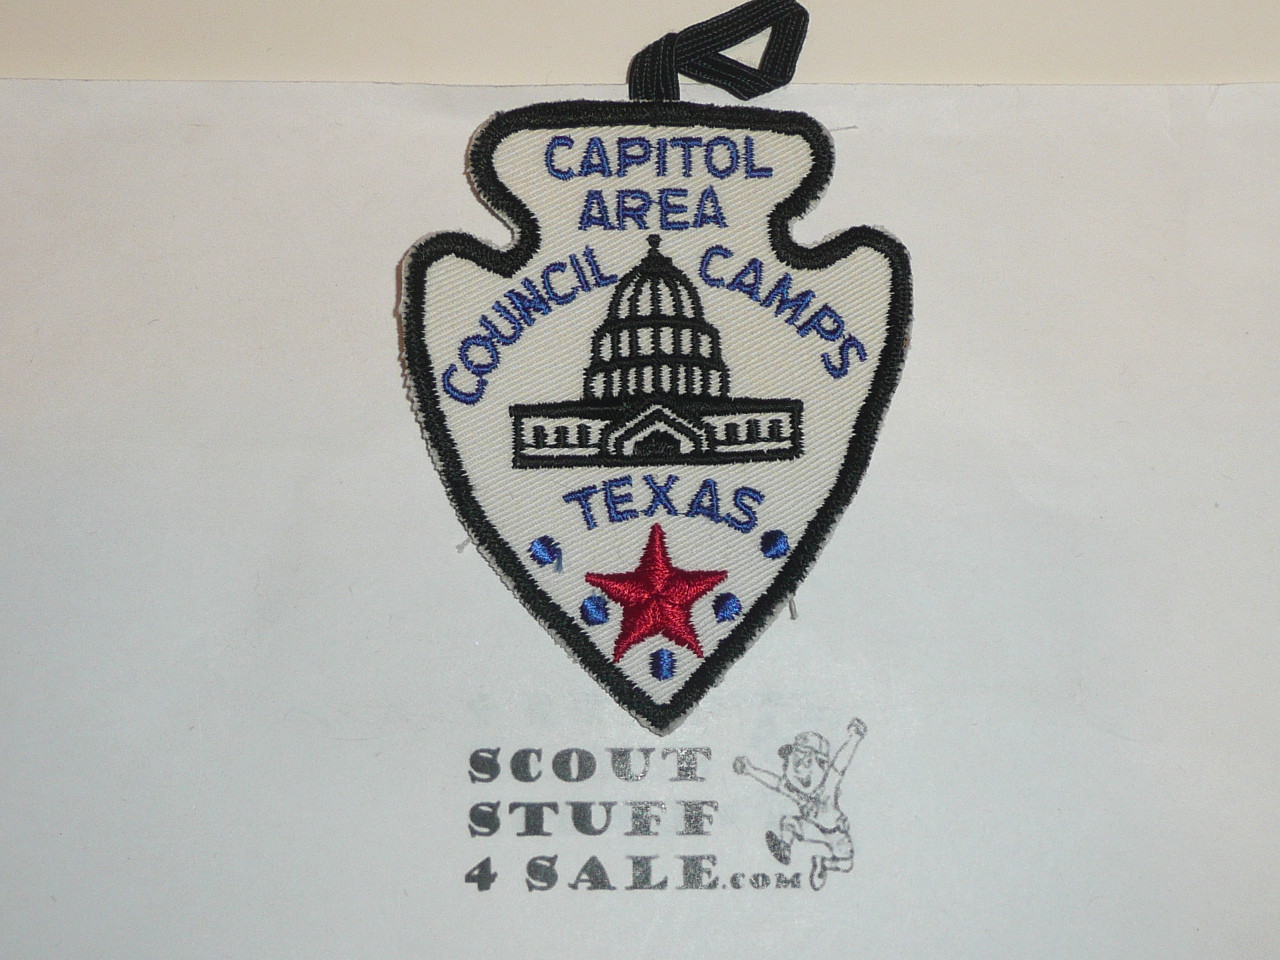 Capitol Area Council Scout Camps c/e Twill Patch, fabric loop